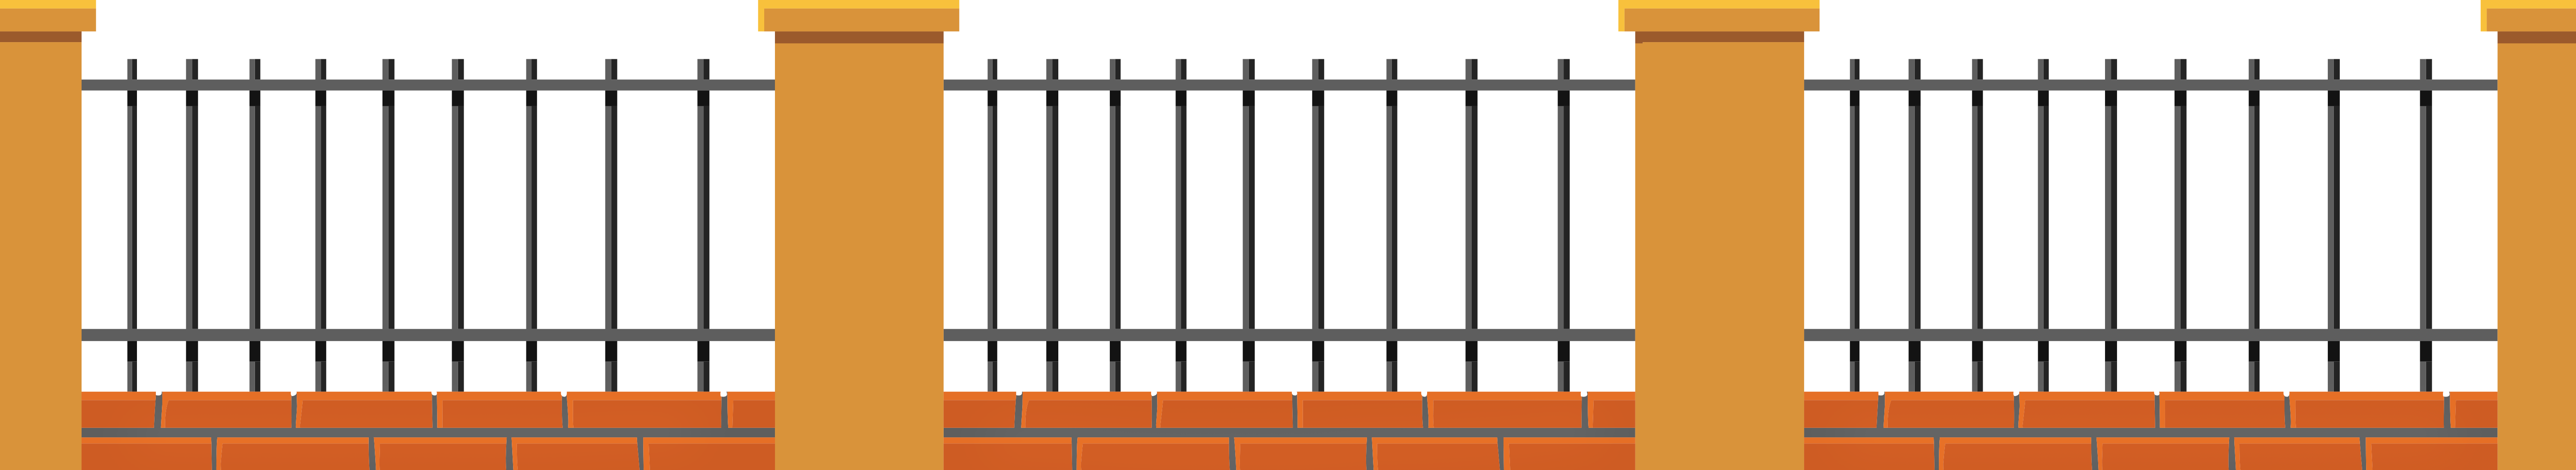 Fence clipart school. Brick png image gallery